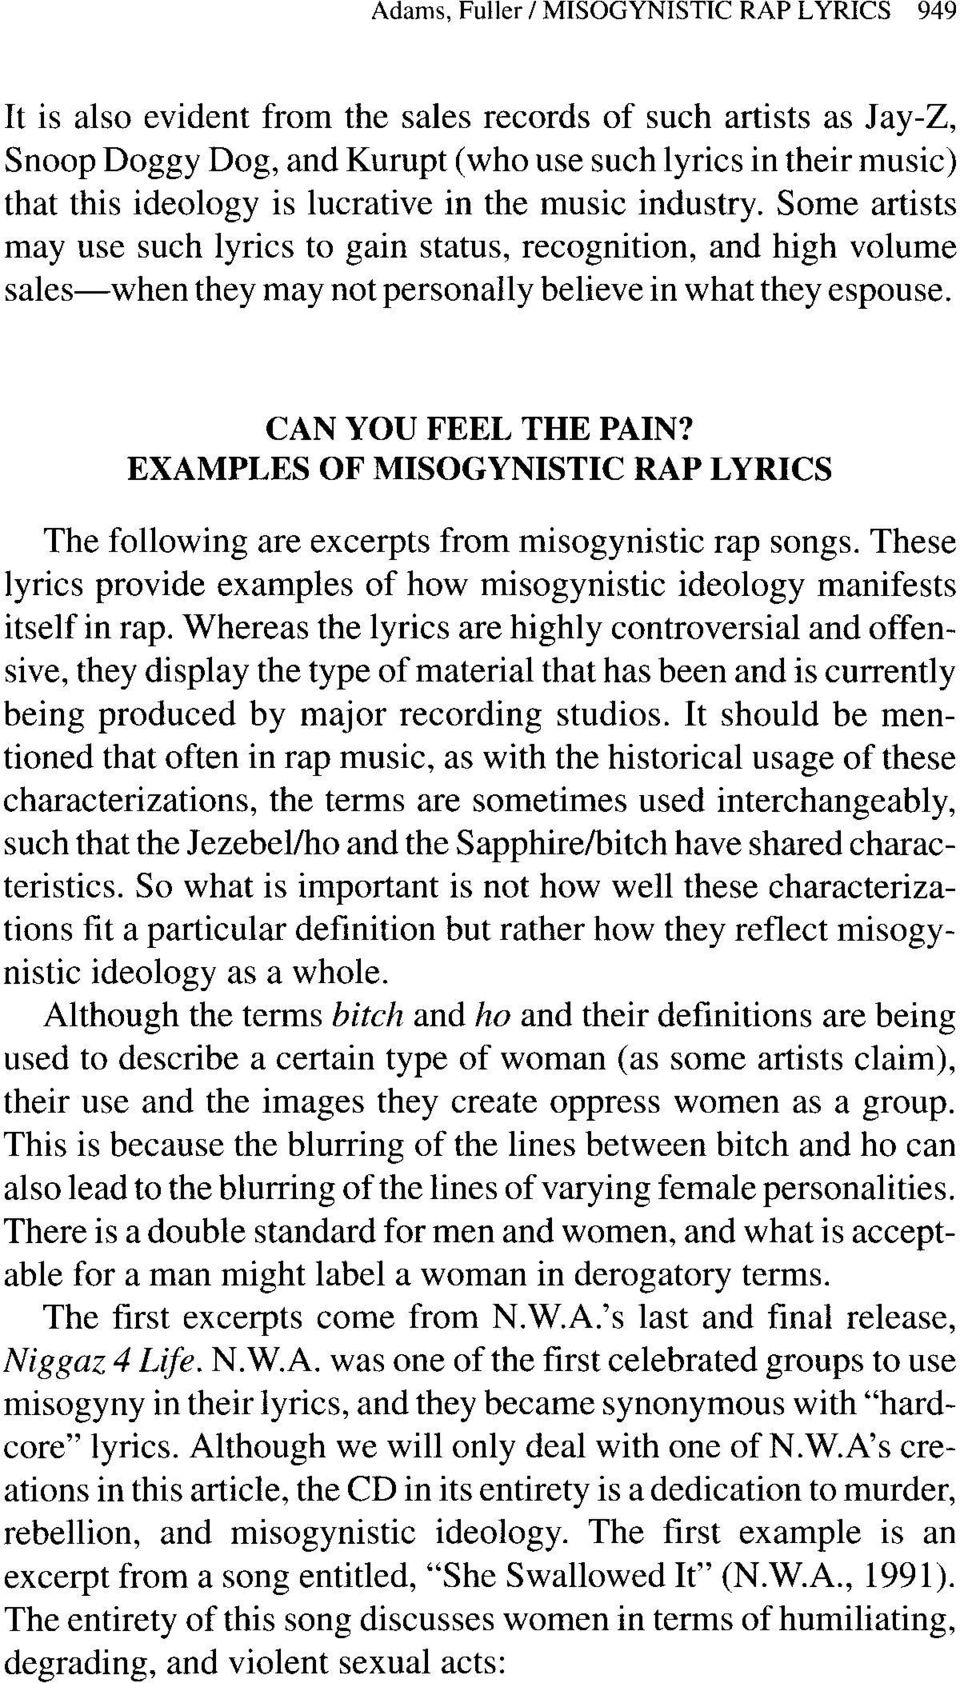 EXAMPLES OF MISOGYNISTIC RAP LYRICS The following are excerpts from misogynistic rap songs. These lyrics provide examples of how misogynistic ideology manifests itself in rap.